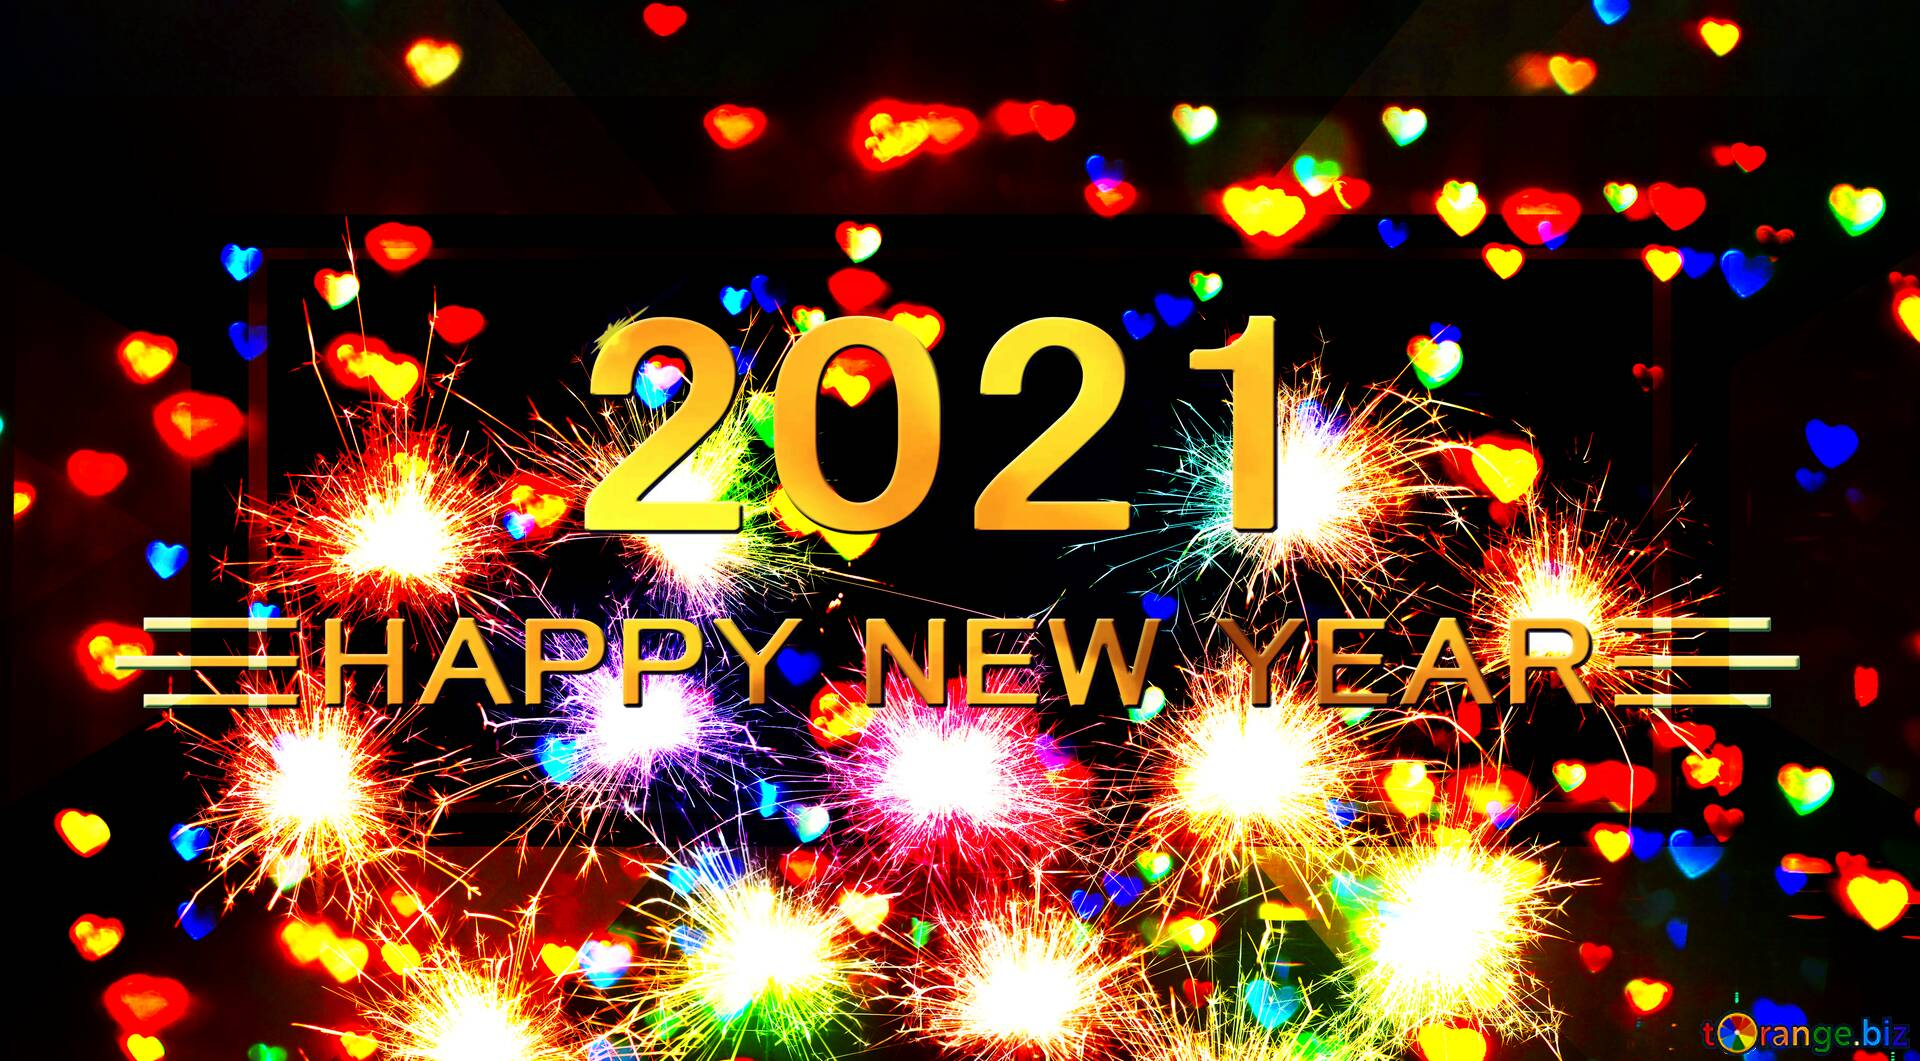 Happy New Year 2021 (Image: gold text on colorful fireworks background)